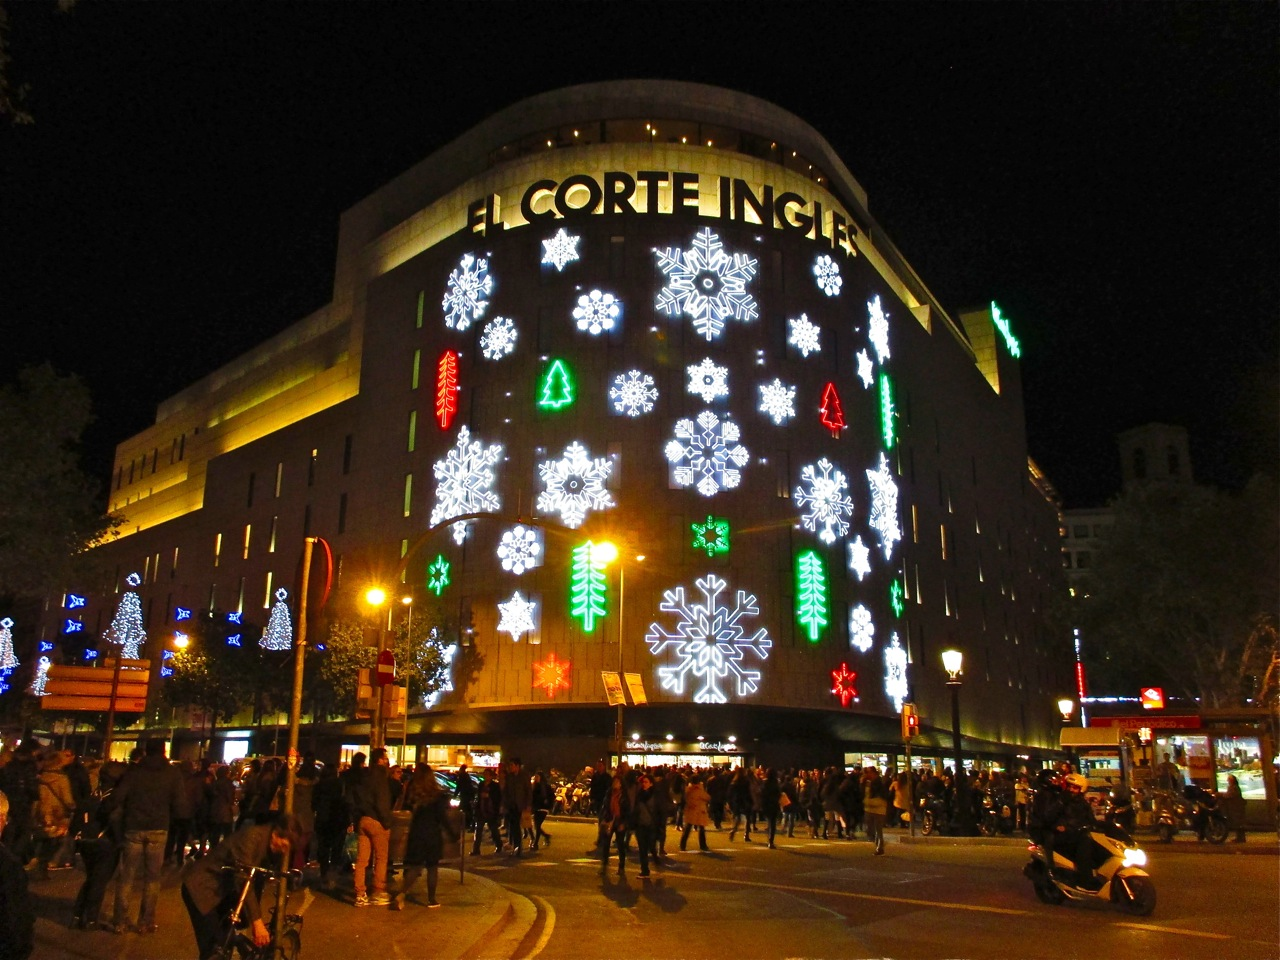 corte ingles illumine